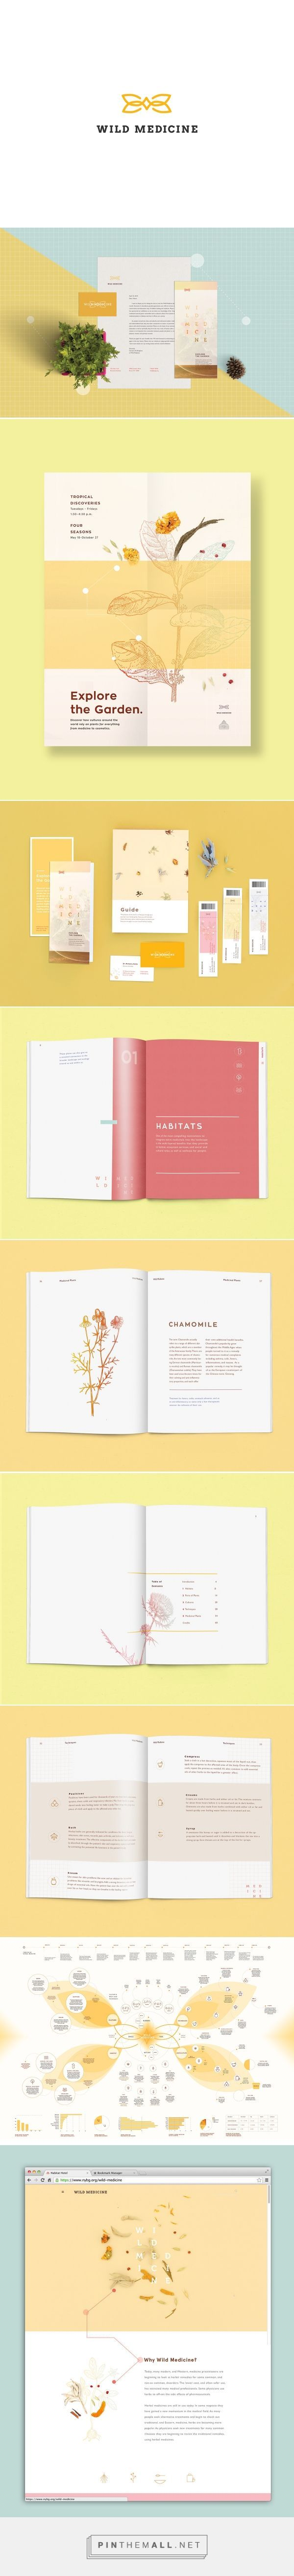 Wild Medicine Branding by Grace Kuk on Behance